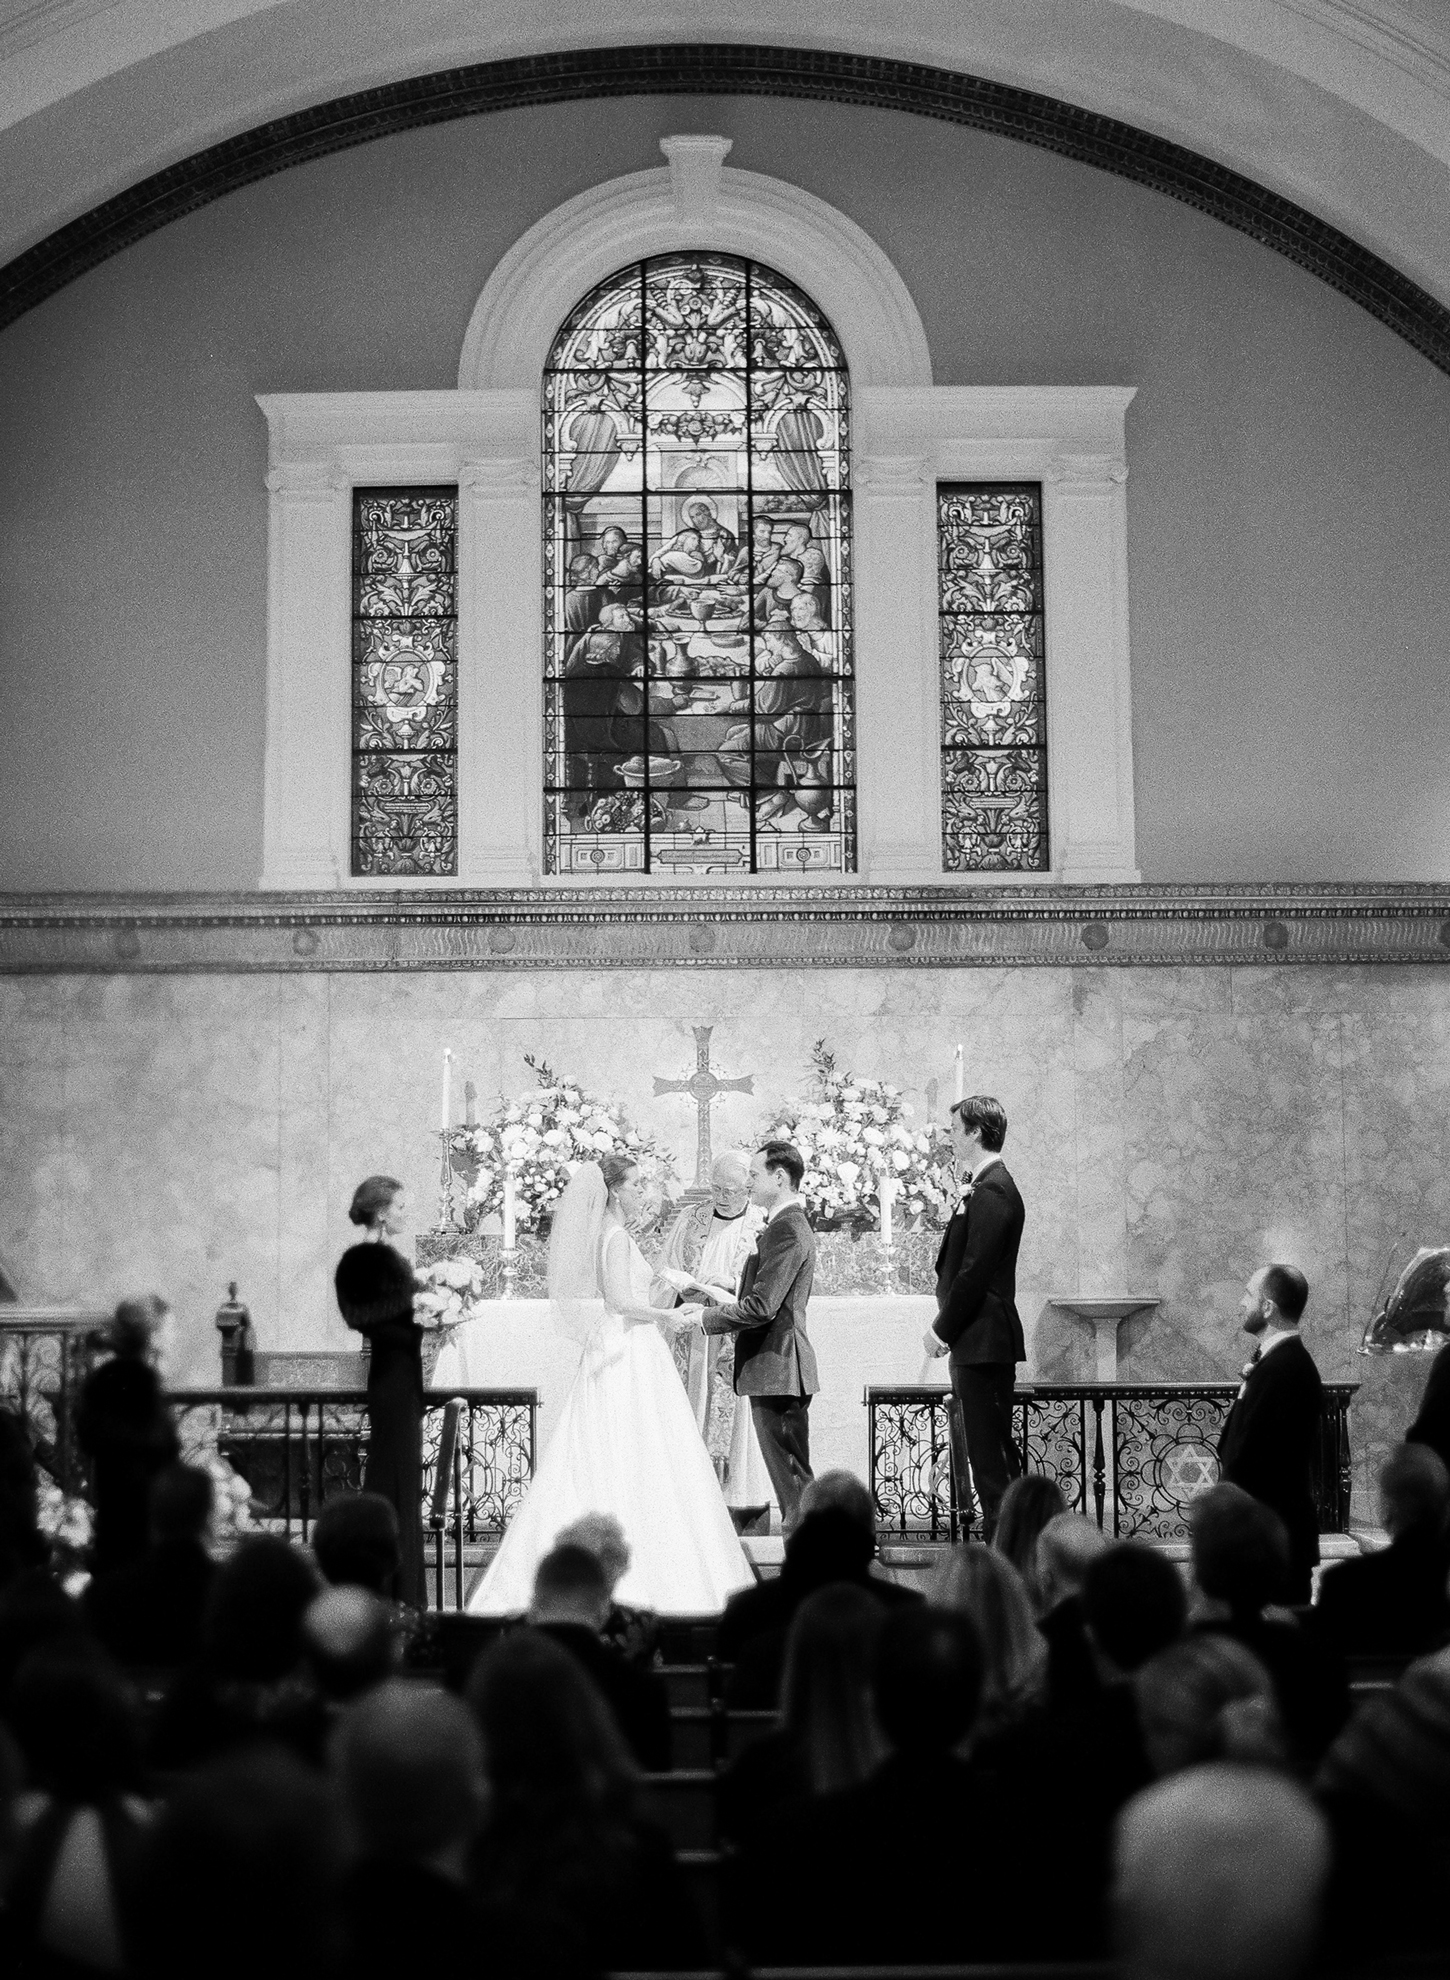 bride and groom at St. John's Church wedding ceremony